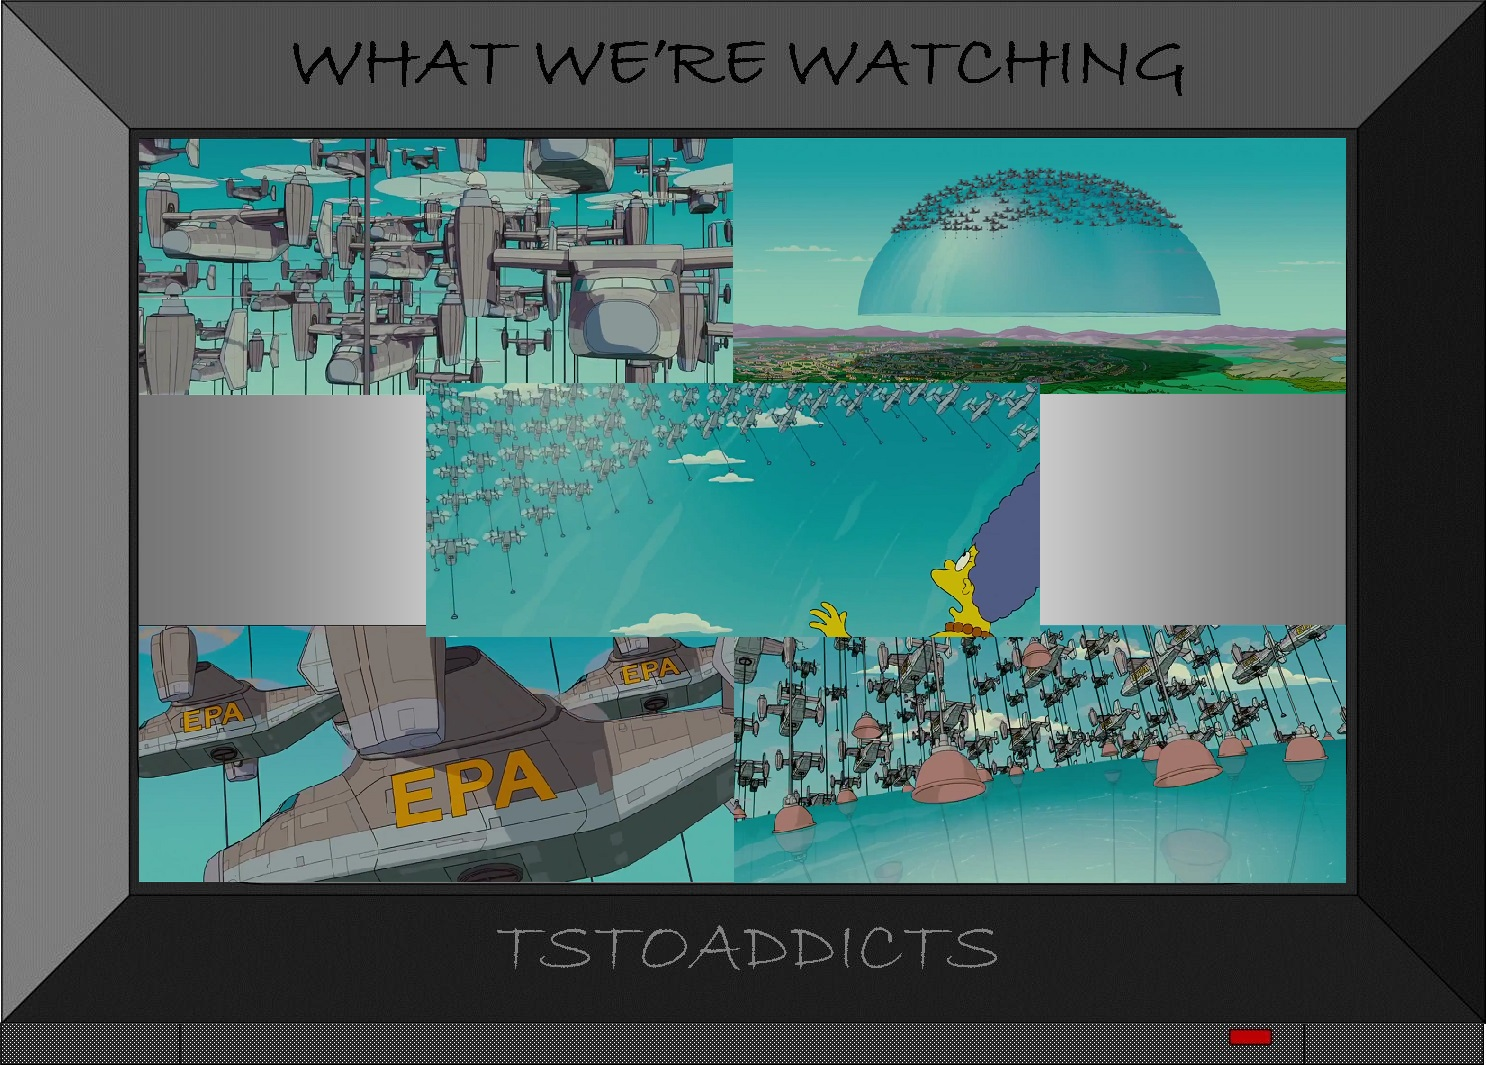 Where Did That Come From Russ Cargill Deep Dome Drill Epa Hoverjet Epa Truckthe Simpsons Tapped Out Addictsall Things The Simpsons Tapped Out For The Tapped Out Addict In All